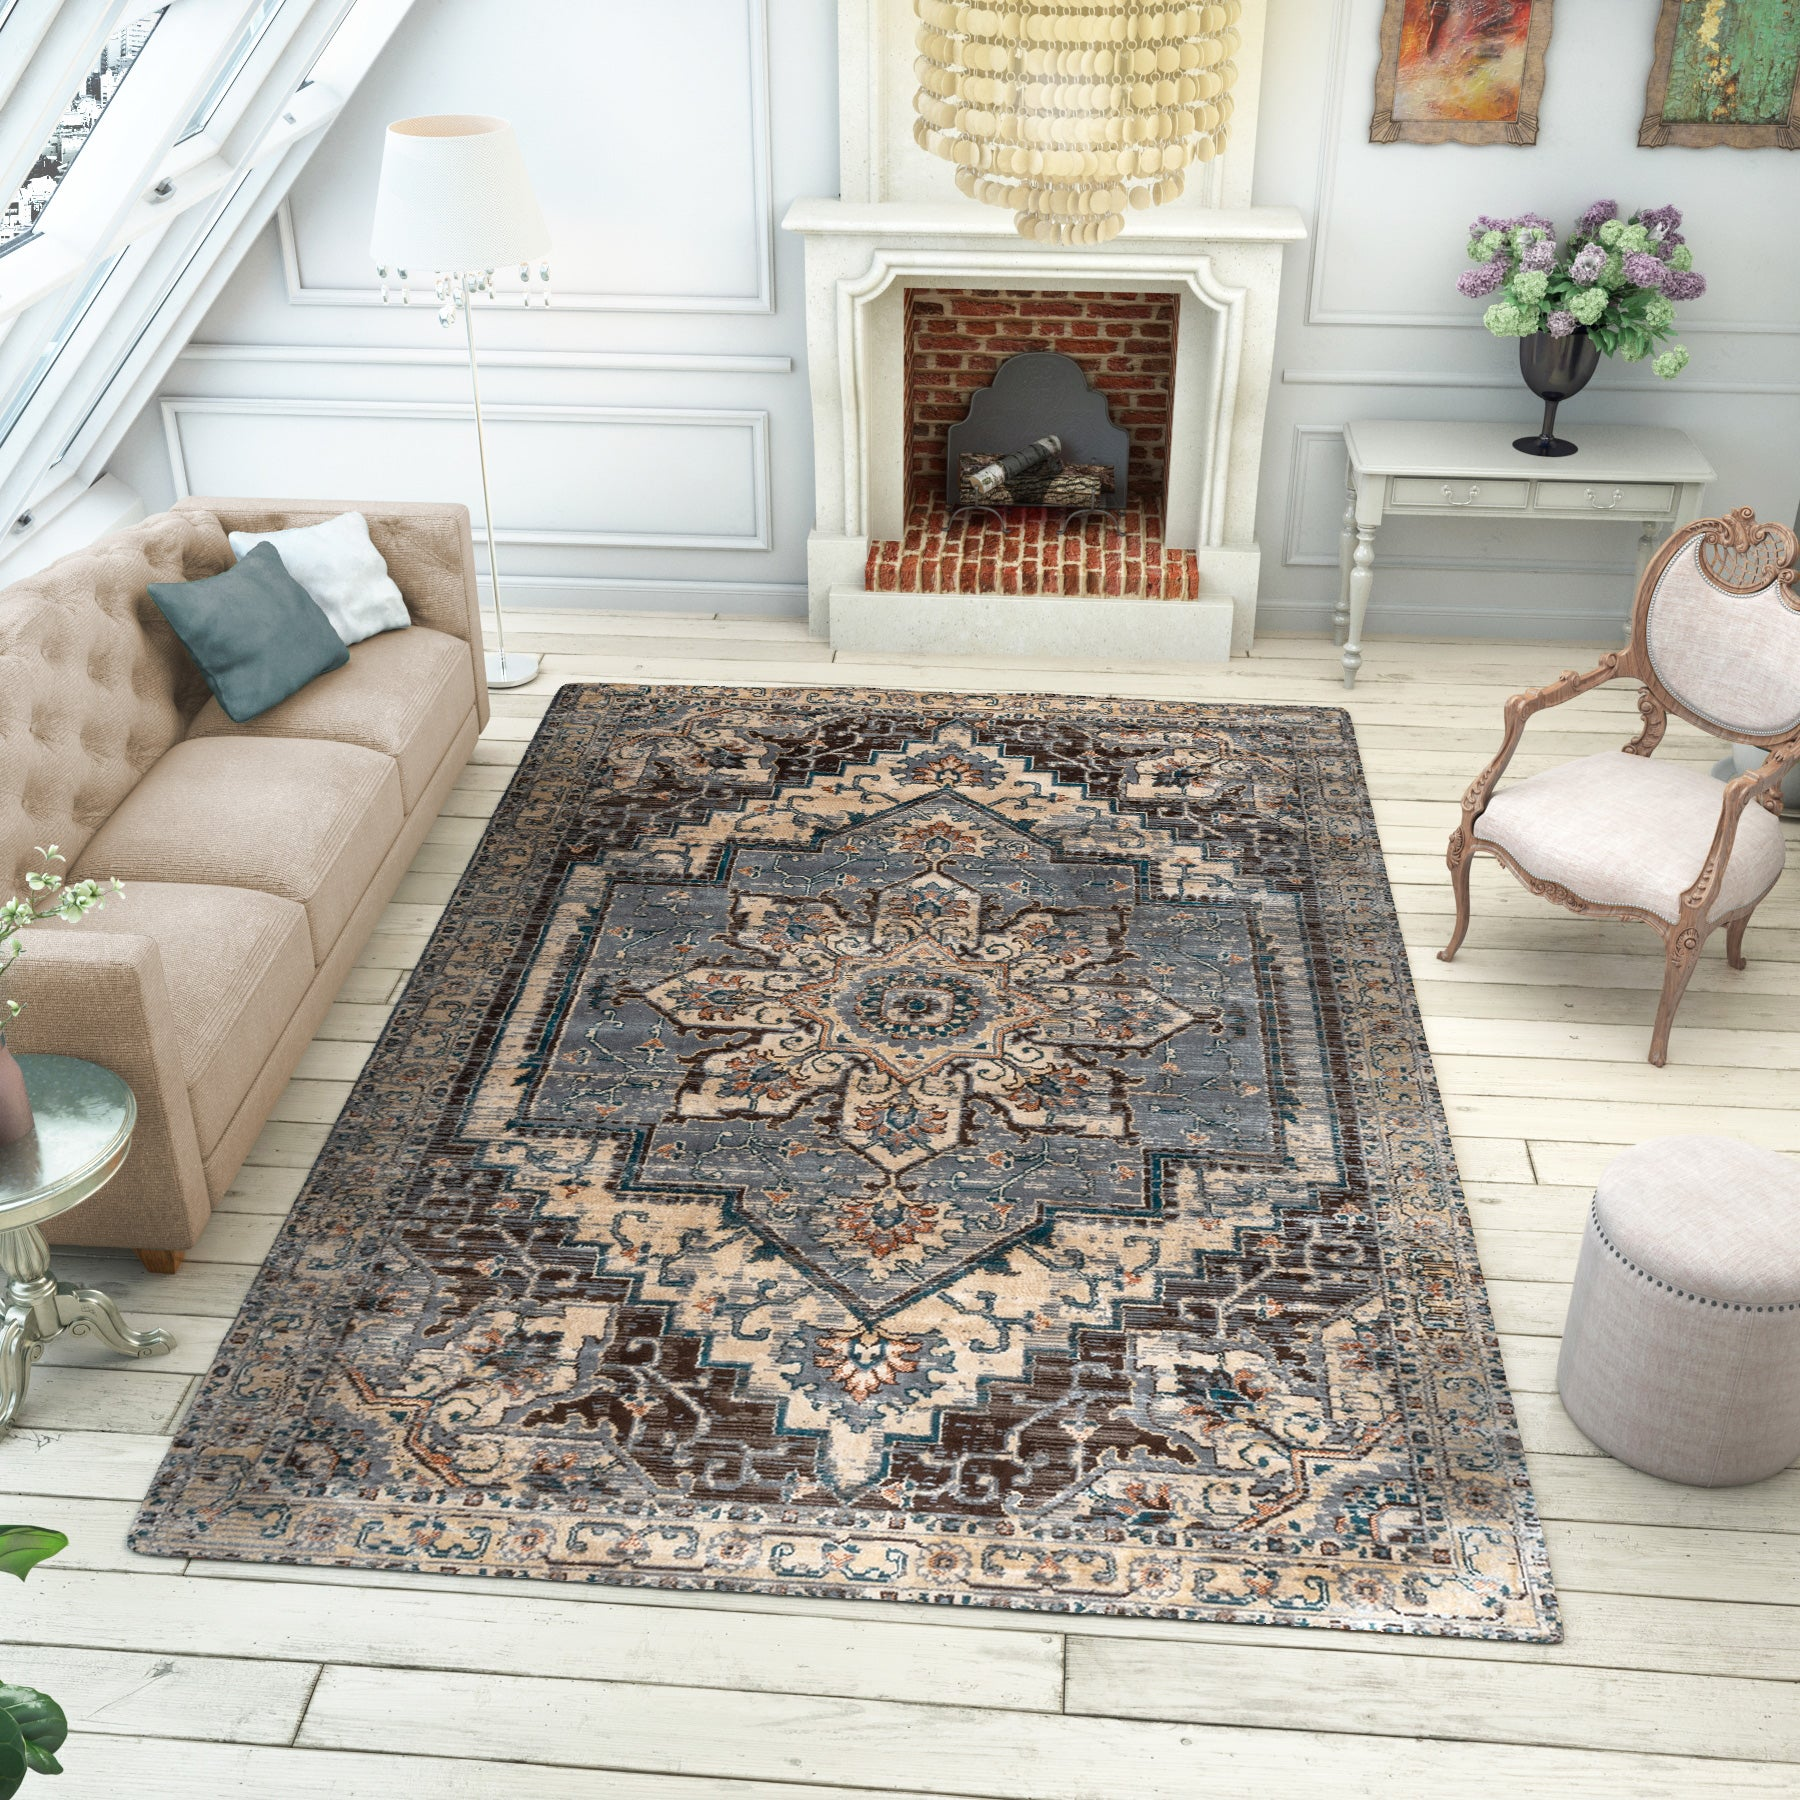 6 Reasons Why Transitional Rugs are So Popular